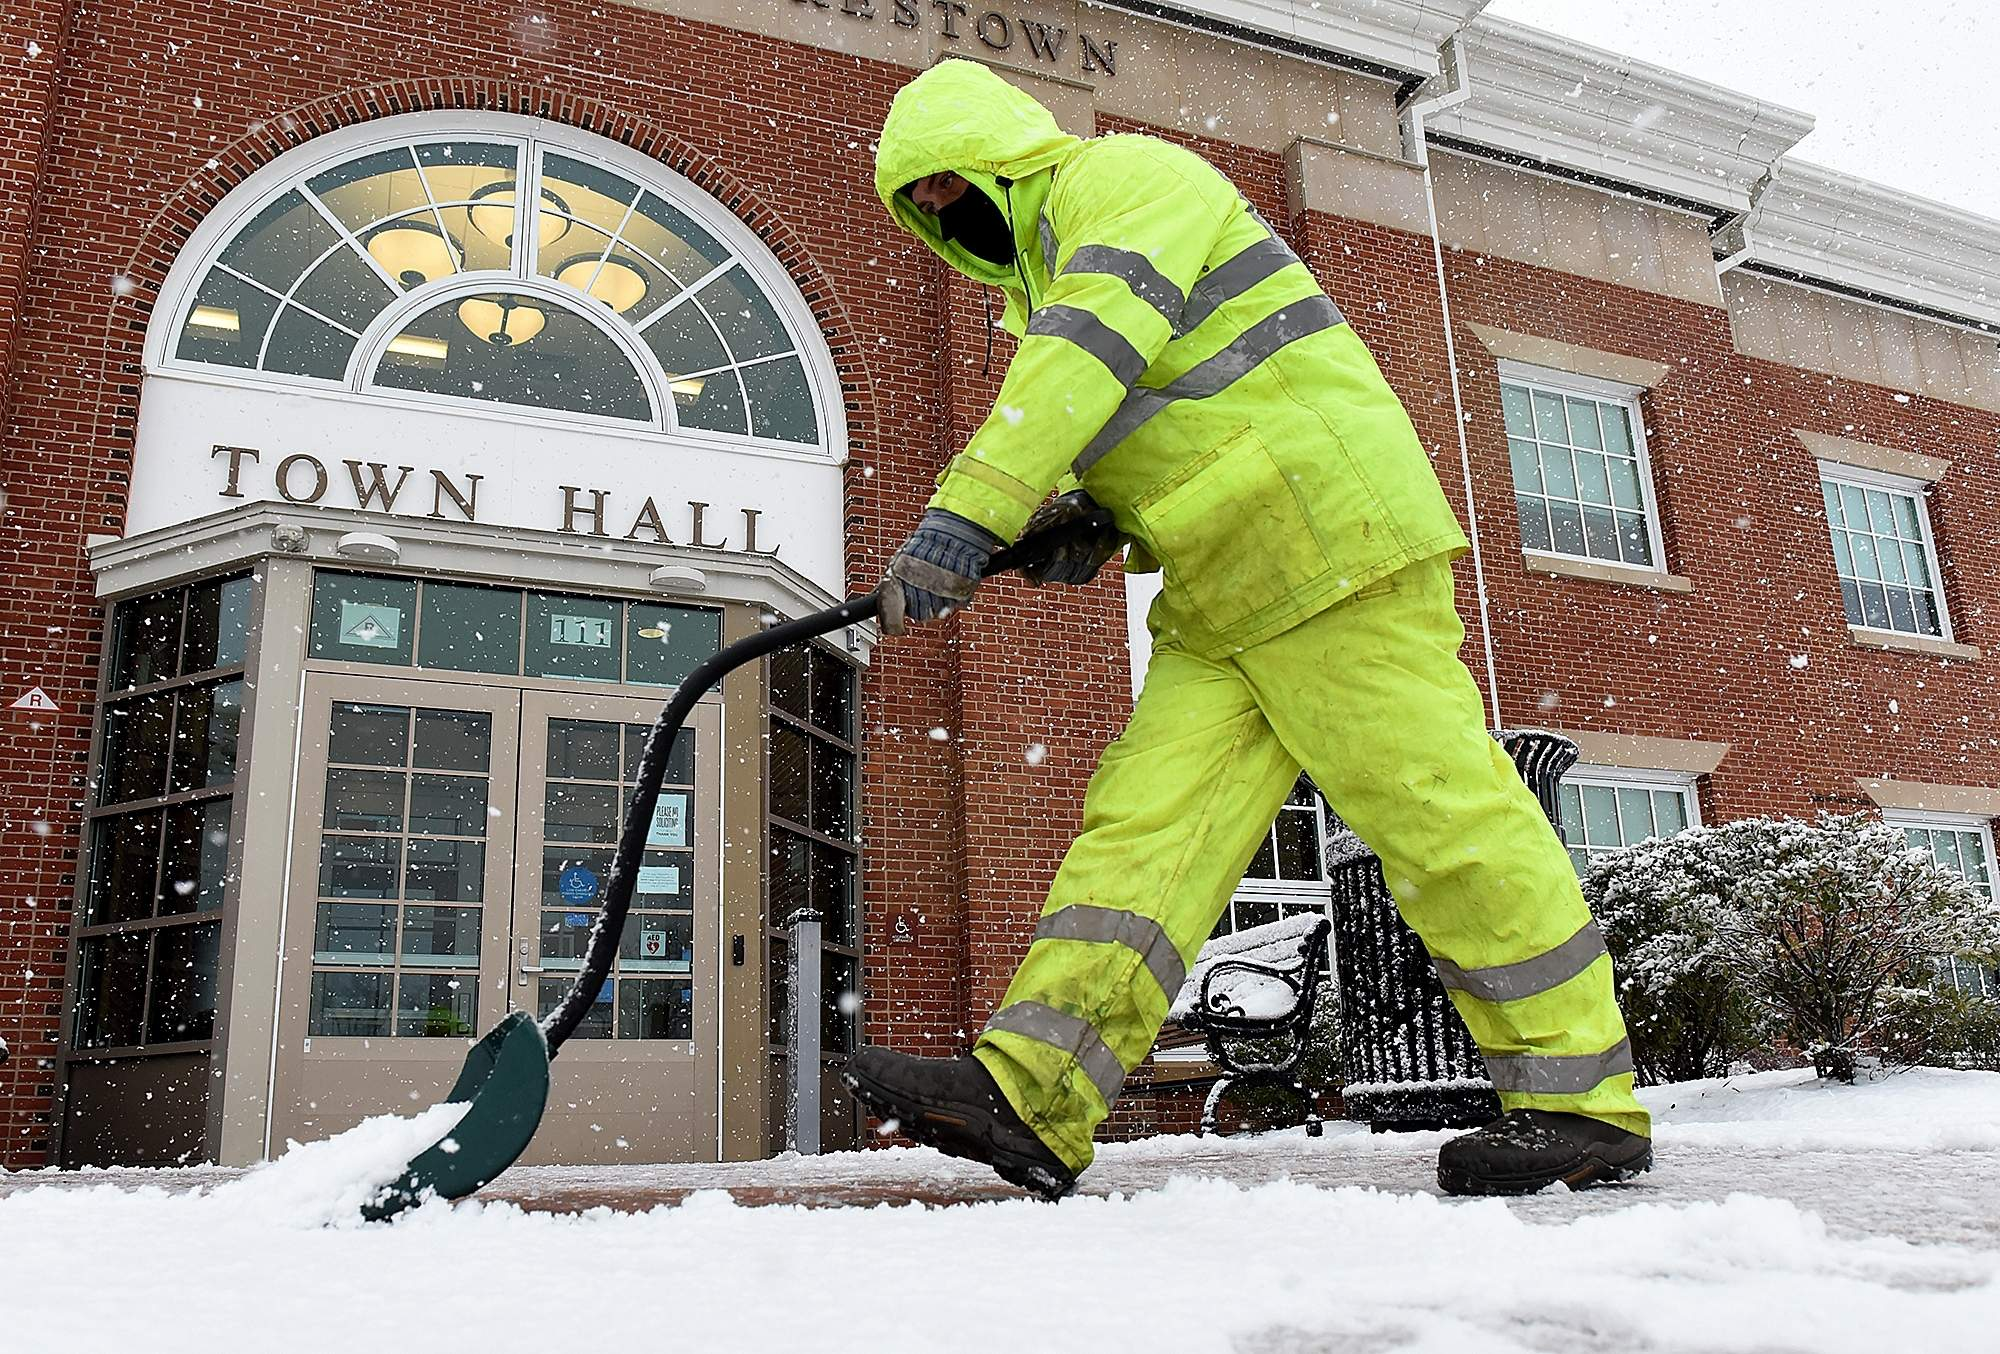 Lance Goins, employed with moorestown township Public Works Department, shovels the sidewalk around Town hall, on Wednesday, March 7, 2018, as heavier snow starts to fall. [NANCY ROKOS / STAFF PHOTOJOURNALIST]